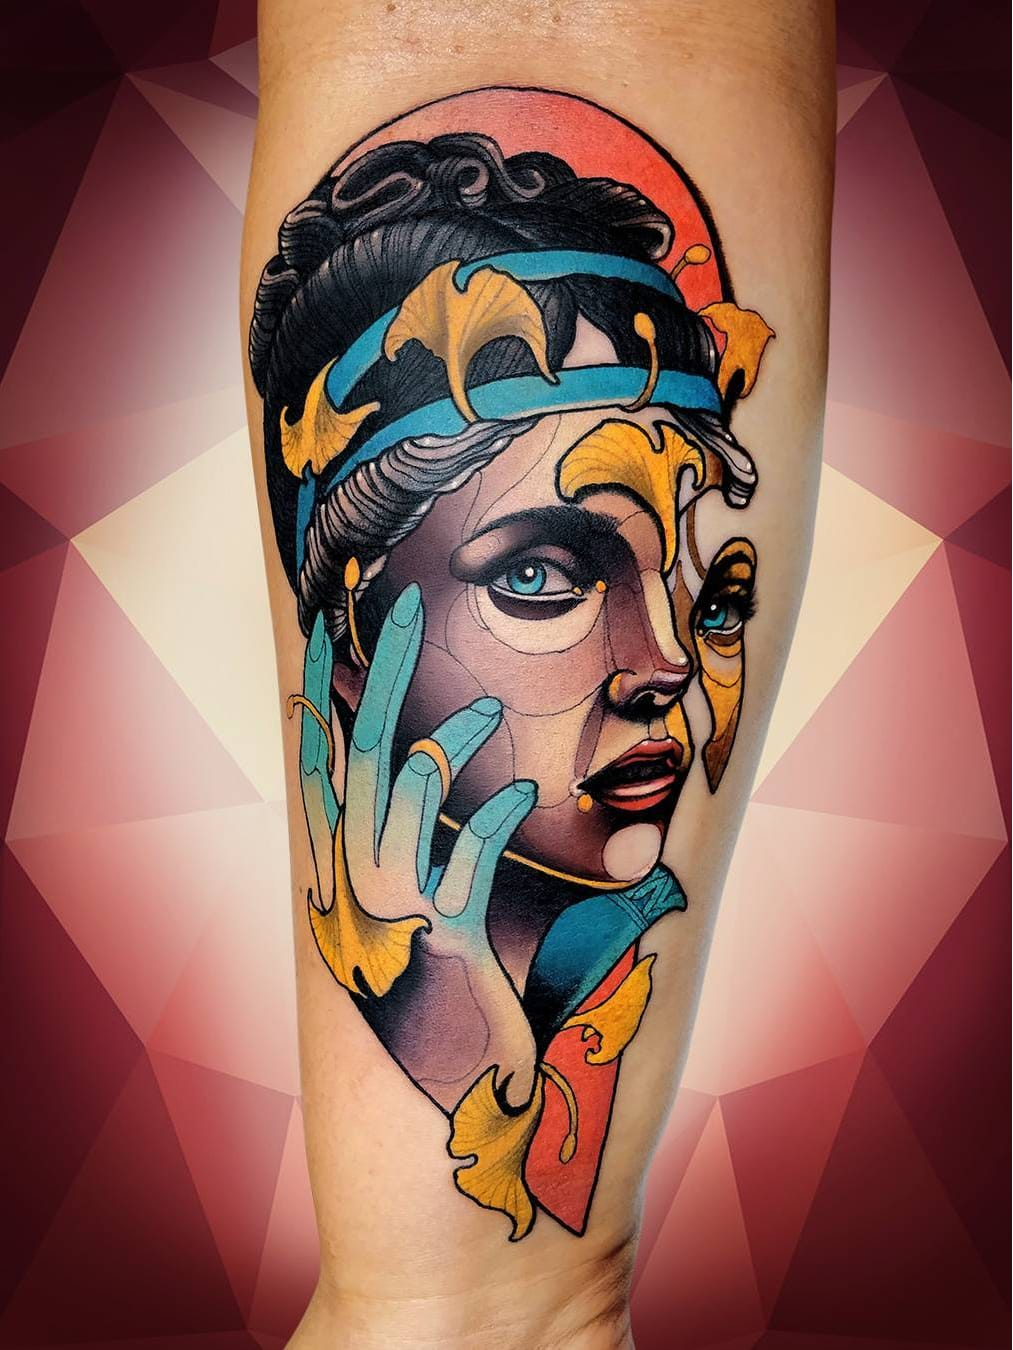 #NiktheRookie #gringo #neotraditional #neotrad #colorido #colorful #woman #mulher